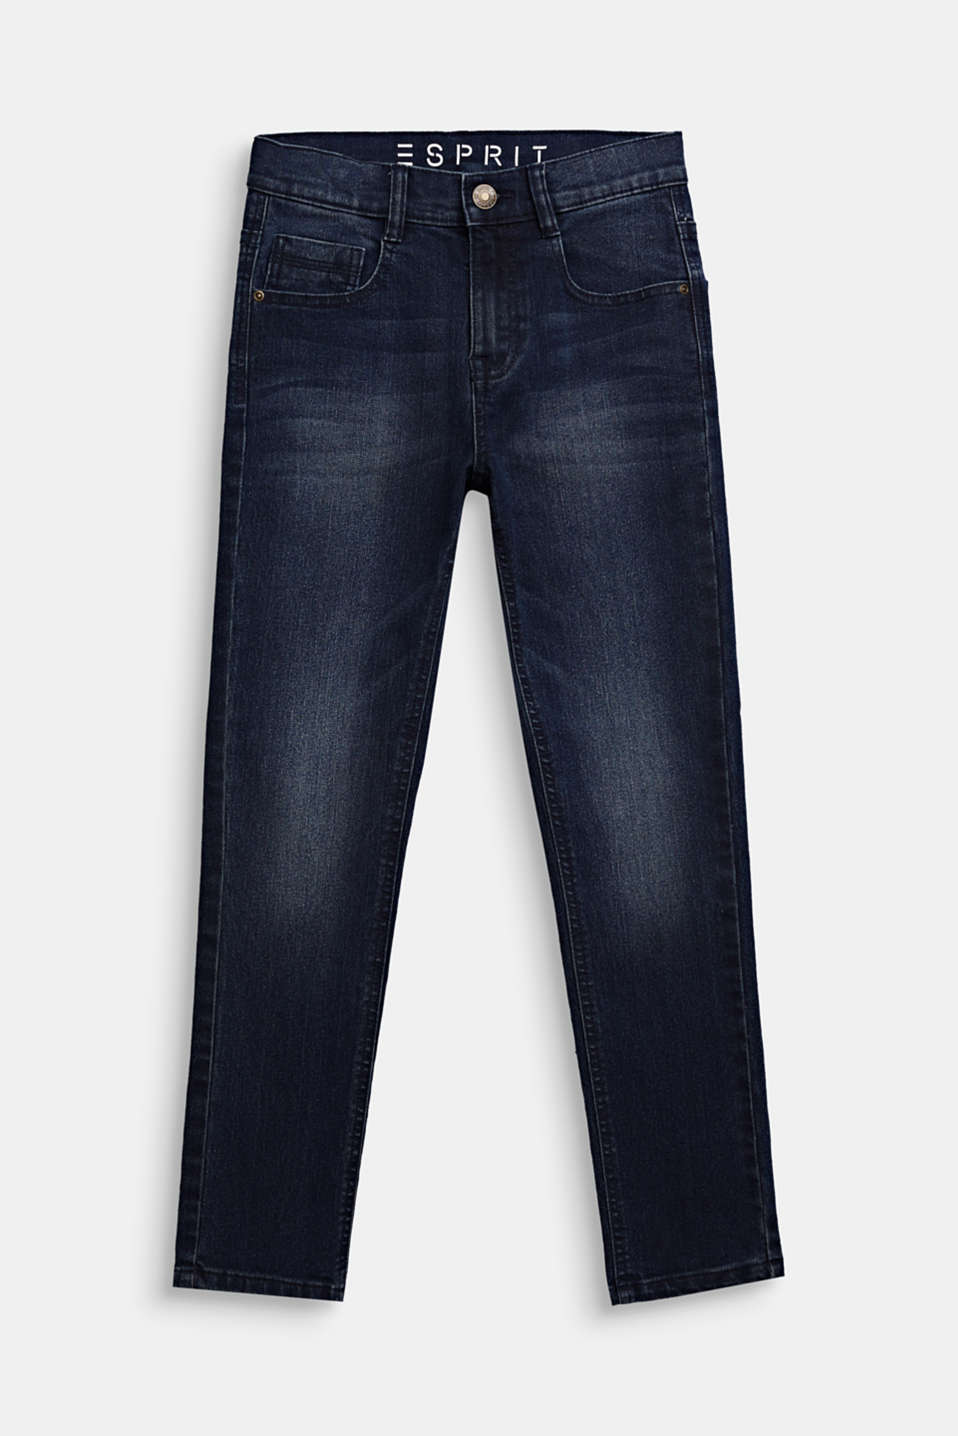 Esprit - Stretchjeans met tapered fit, verstelbare band